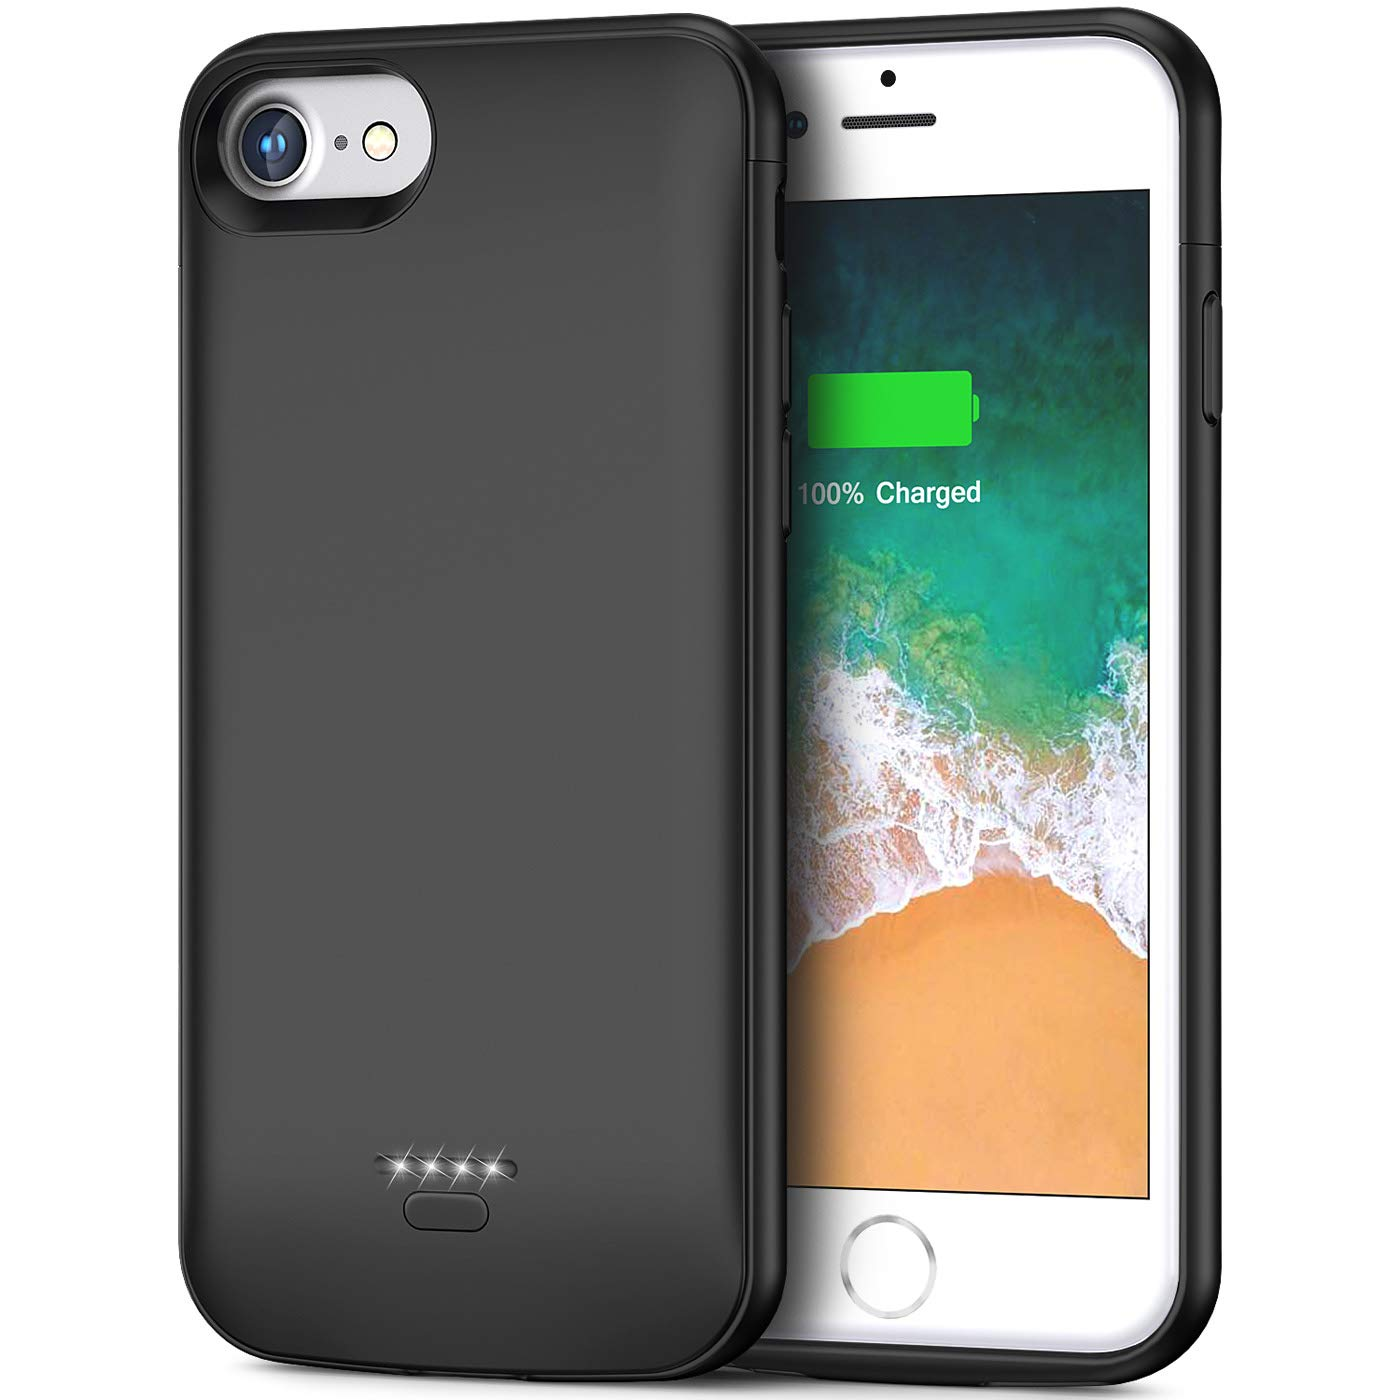 Amazon.com: Funda de batería para iPhone 6 y 6s, 4000 mAh ...